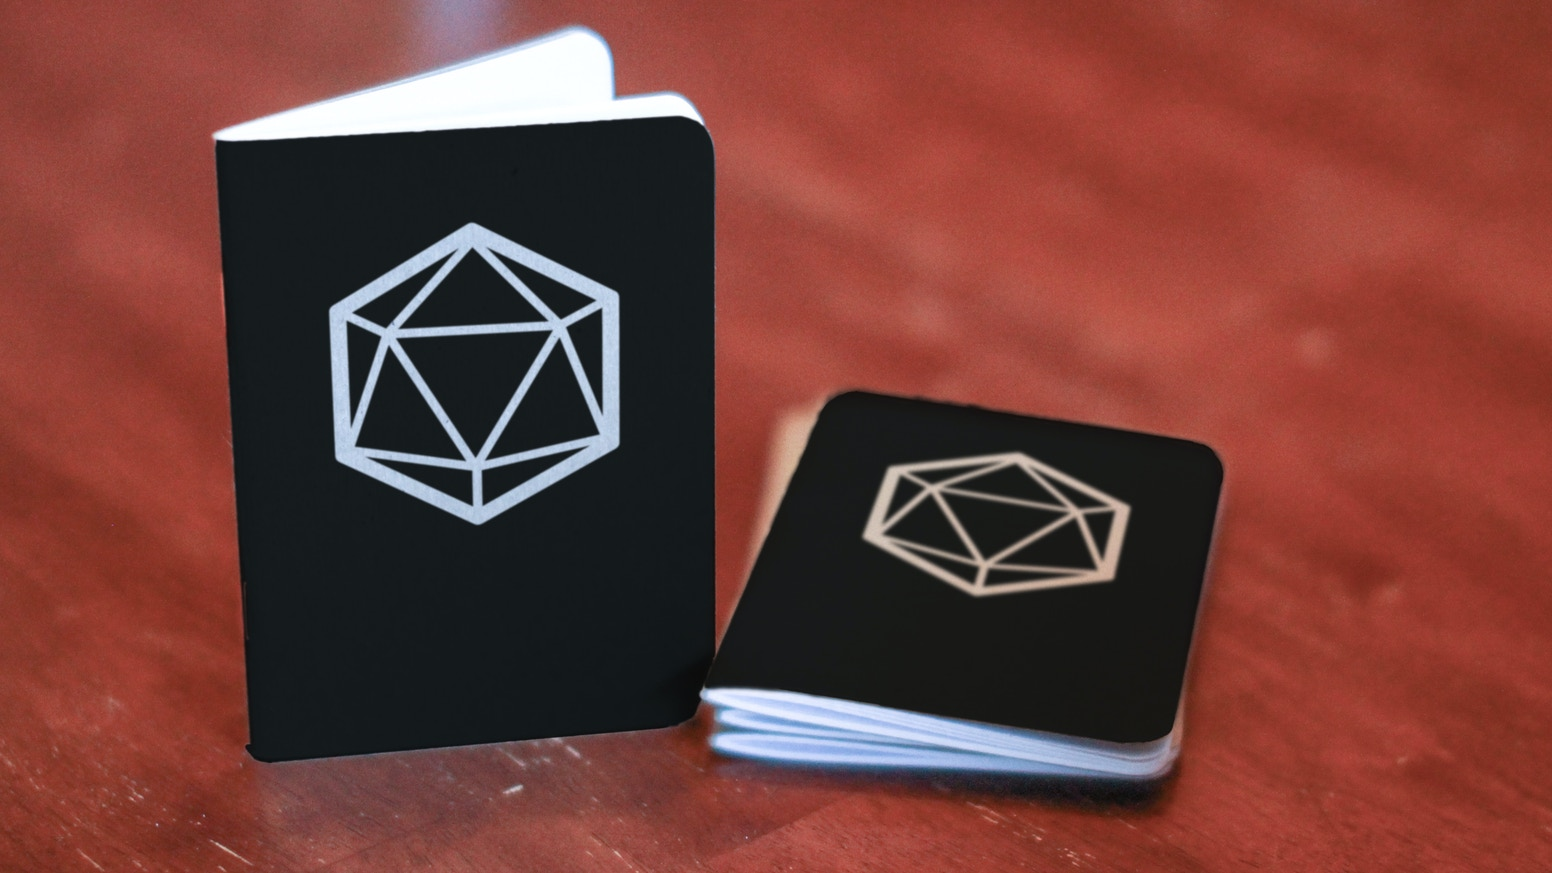 A notebook designed to plan and document your tabletop games works with any tabletop RPG game system.